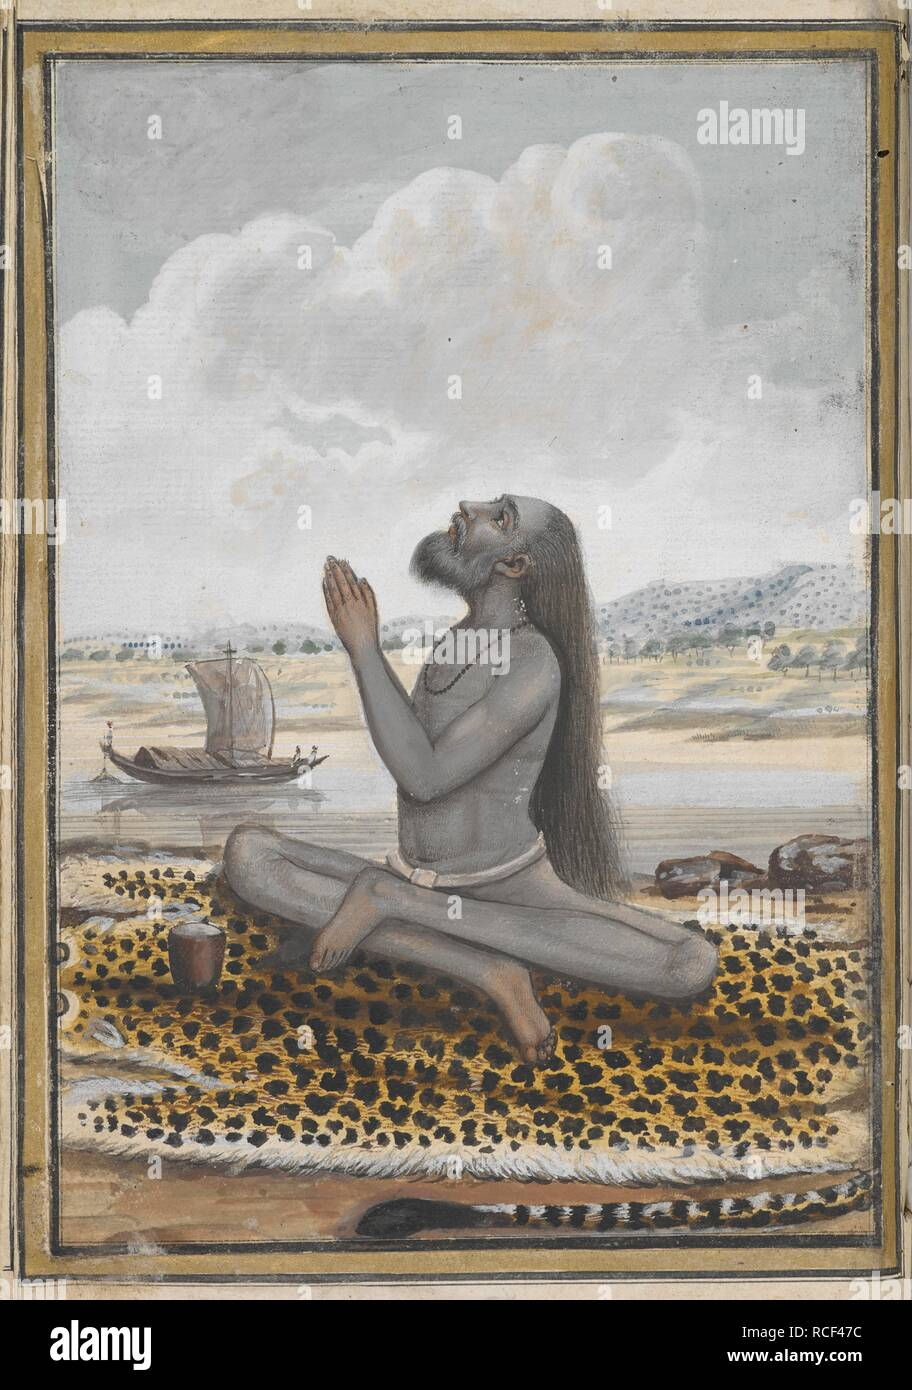 A member of the Agas Maghi sect. The members of this sect are not allowed to shave their hair or beards. They either covered their body with ash or wore colourful cloths. A painting from a nineteenth century manuscript of Fuqara'-i Hind, a text describing the different Hindu religious sects. Fuqara'-i Hind. early 19th century. Source: I.O. ISLAMIC 4777, f.77. Language: Persian. Stock Photo